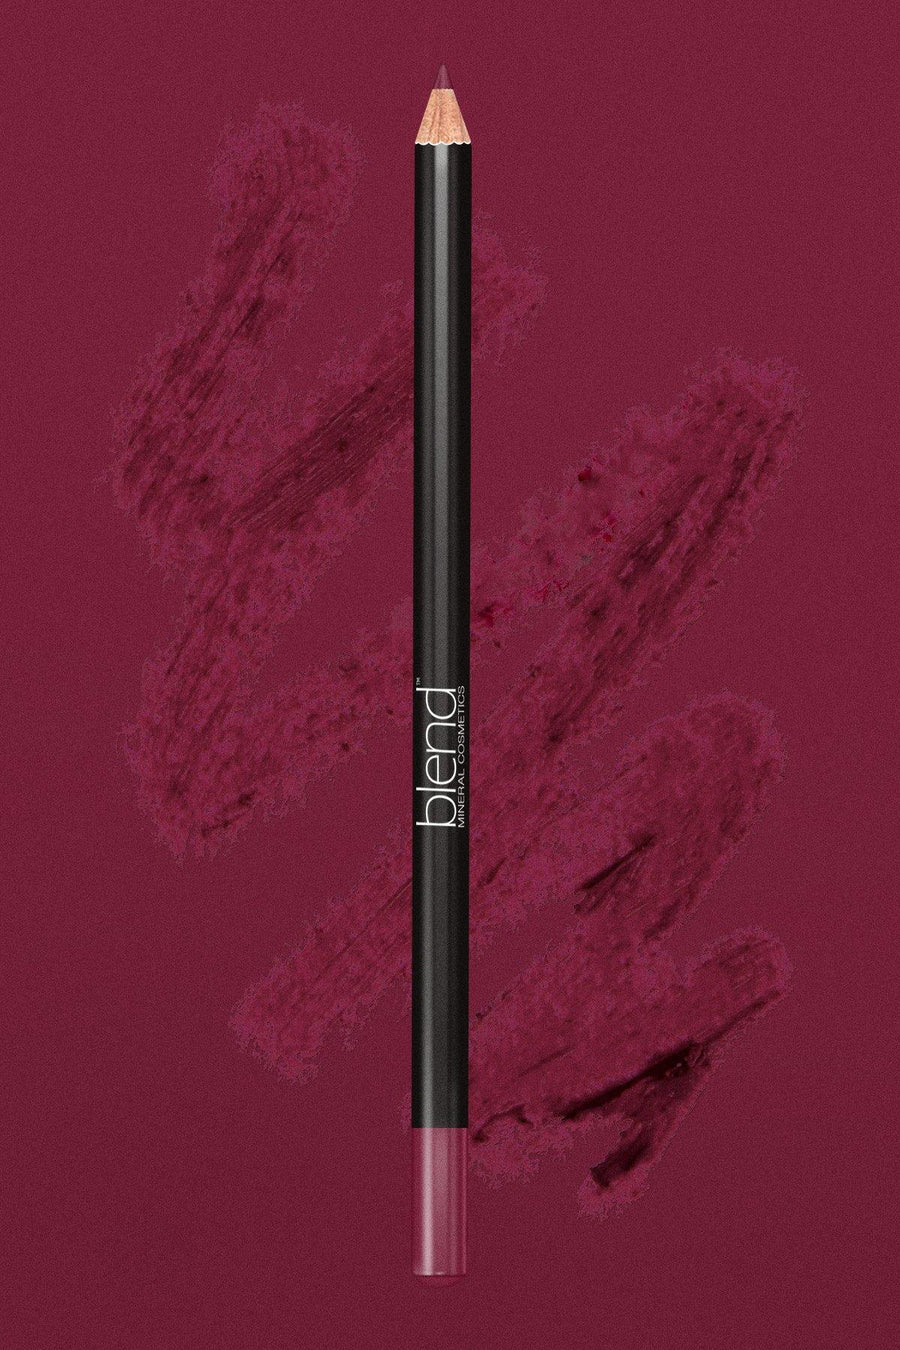 P23 - Blend Mineral Cosmetics